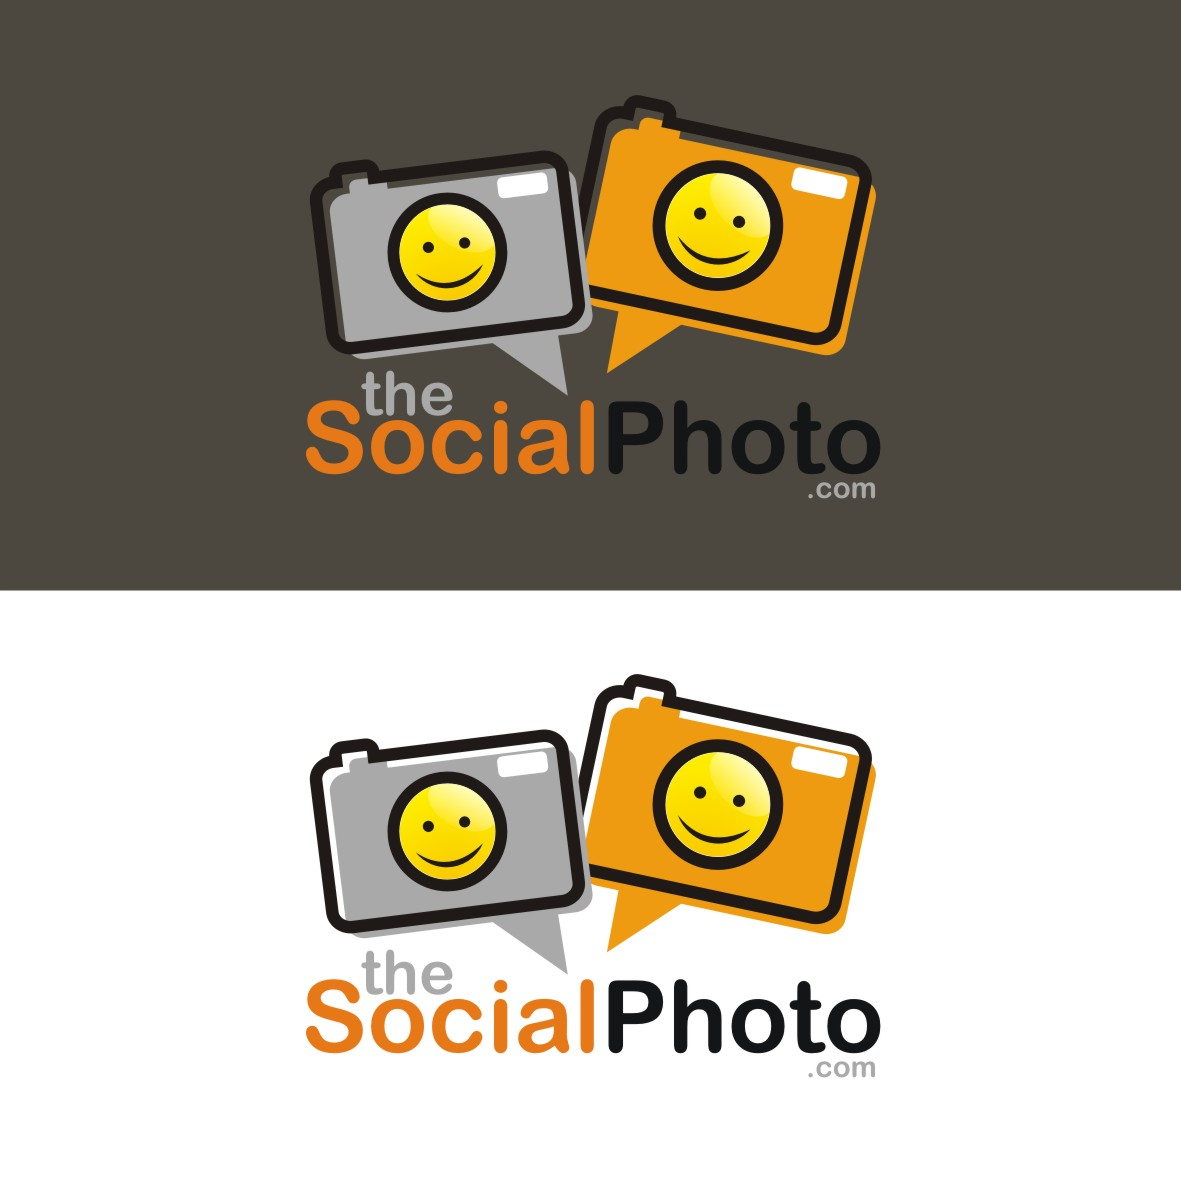 Logo Design by arteo_design - Entry No. 82 in the Logo Design Contest New Logo Design for the social photo.